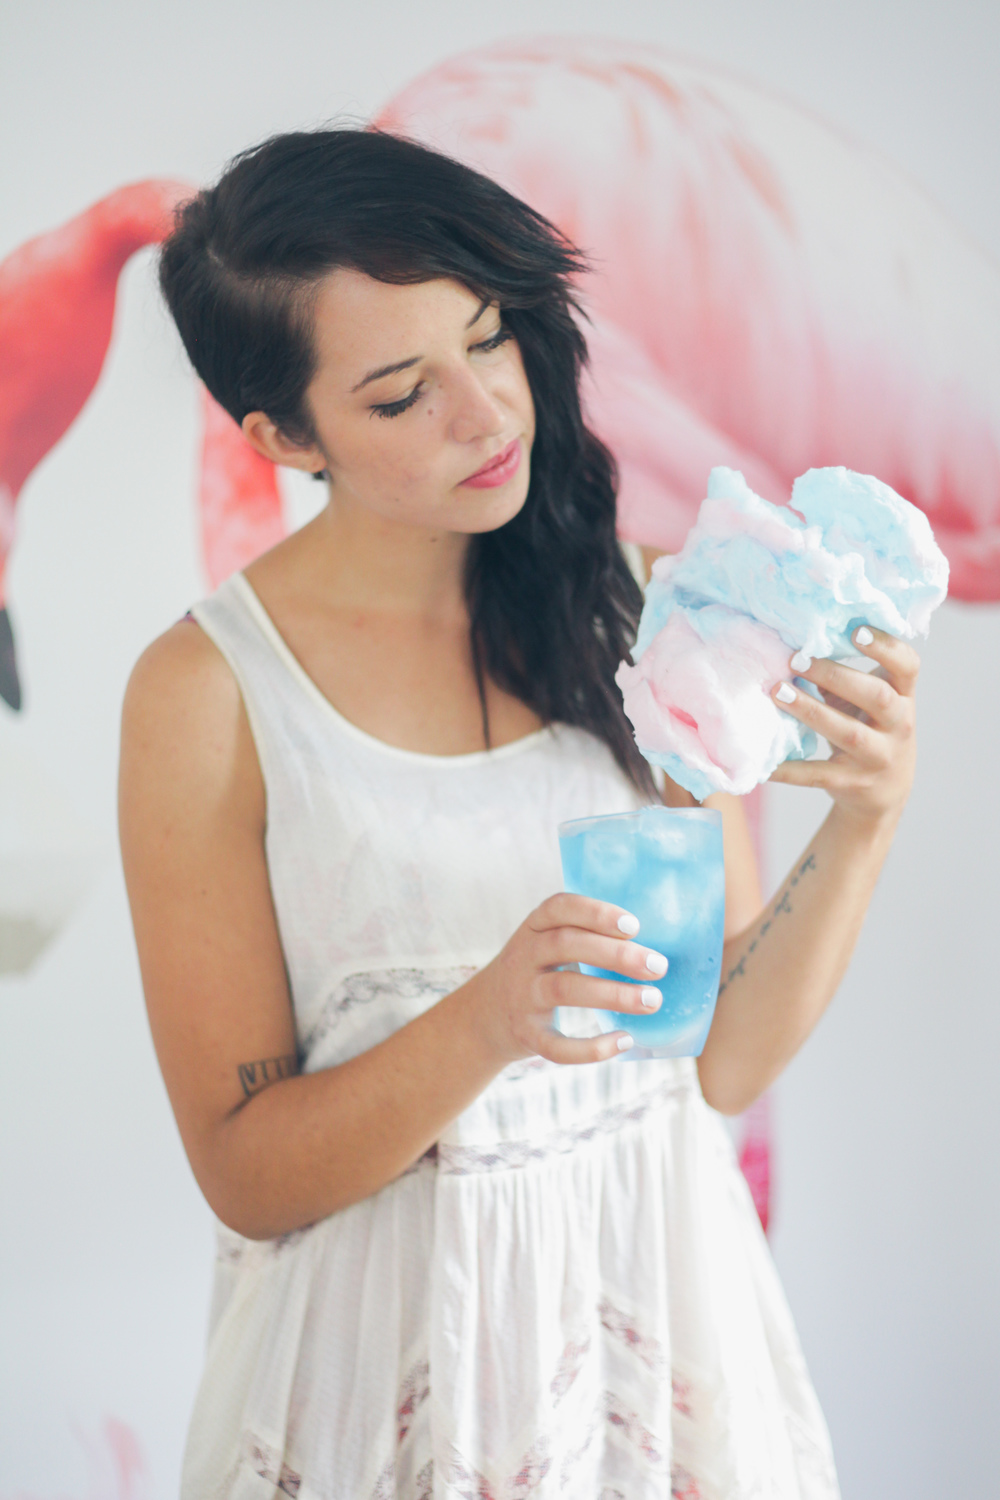 cottoncandy martini east van vodka bubblegum jones soda diy recipe cocktail-23.jpg